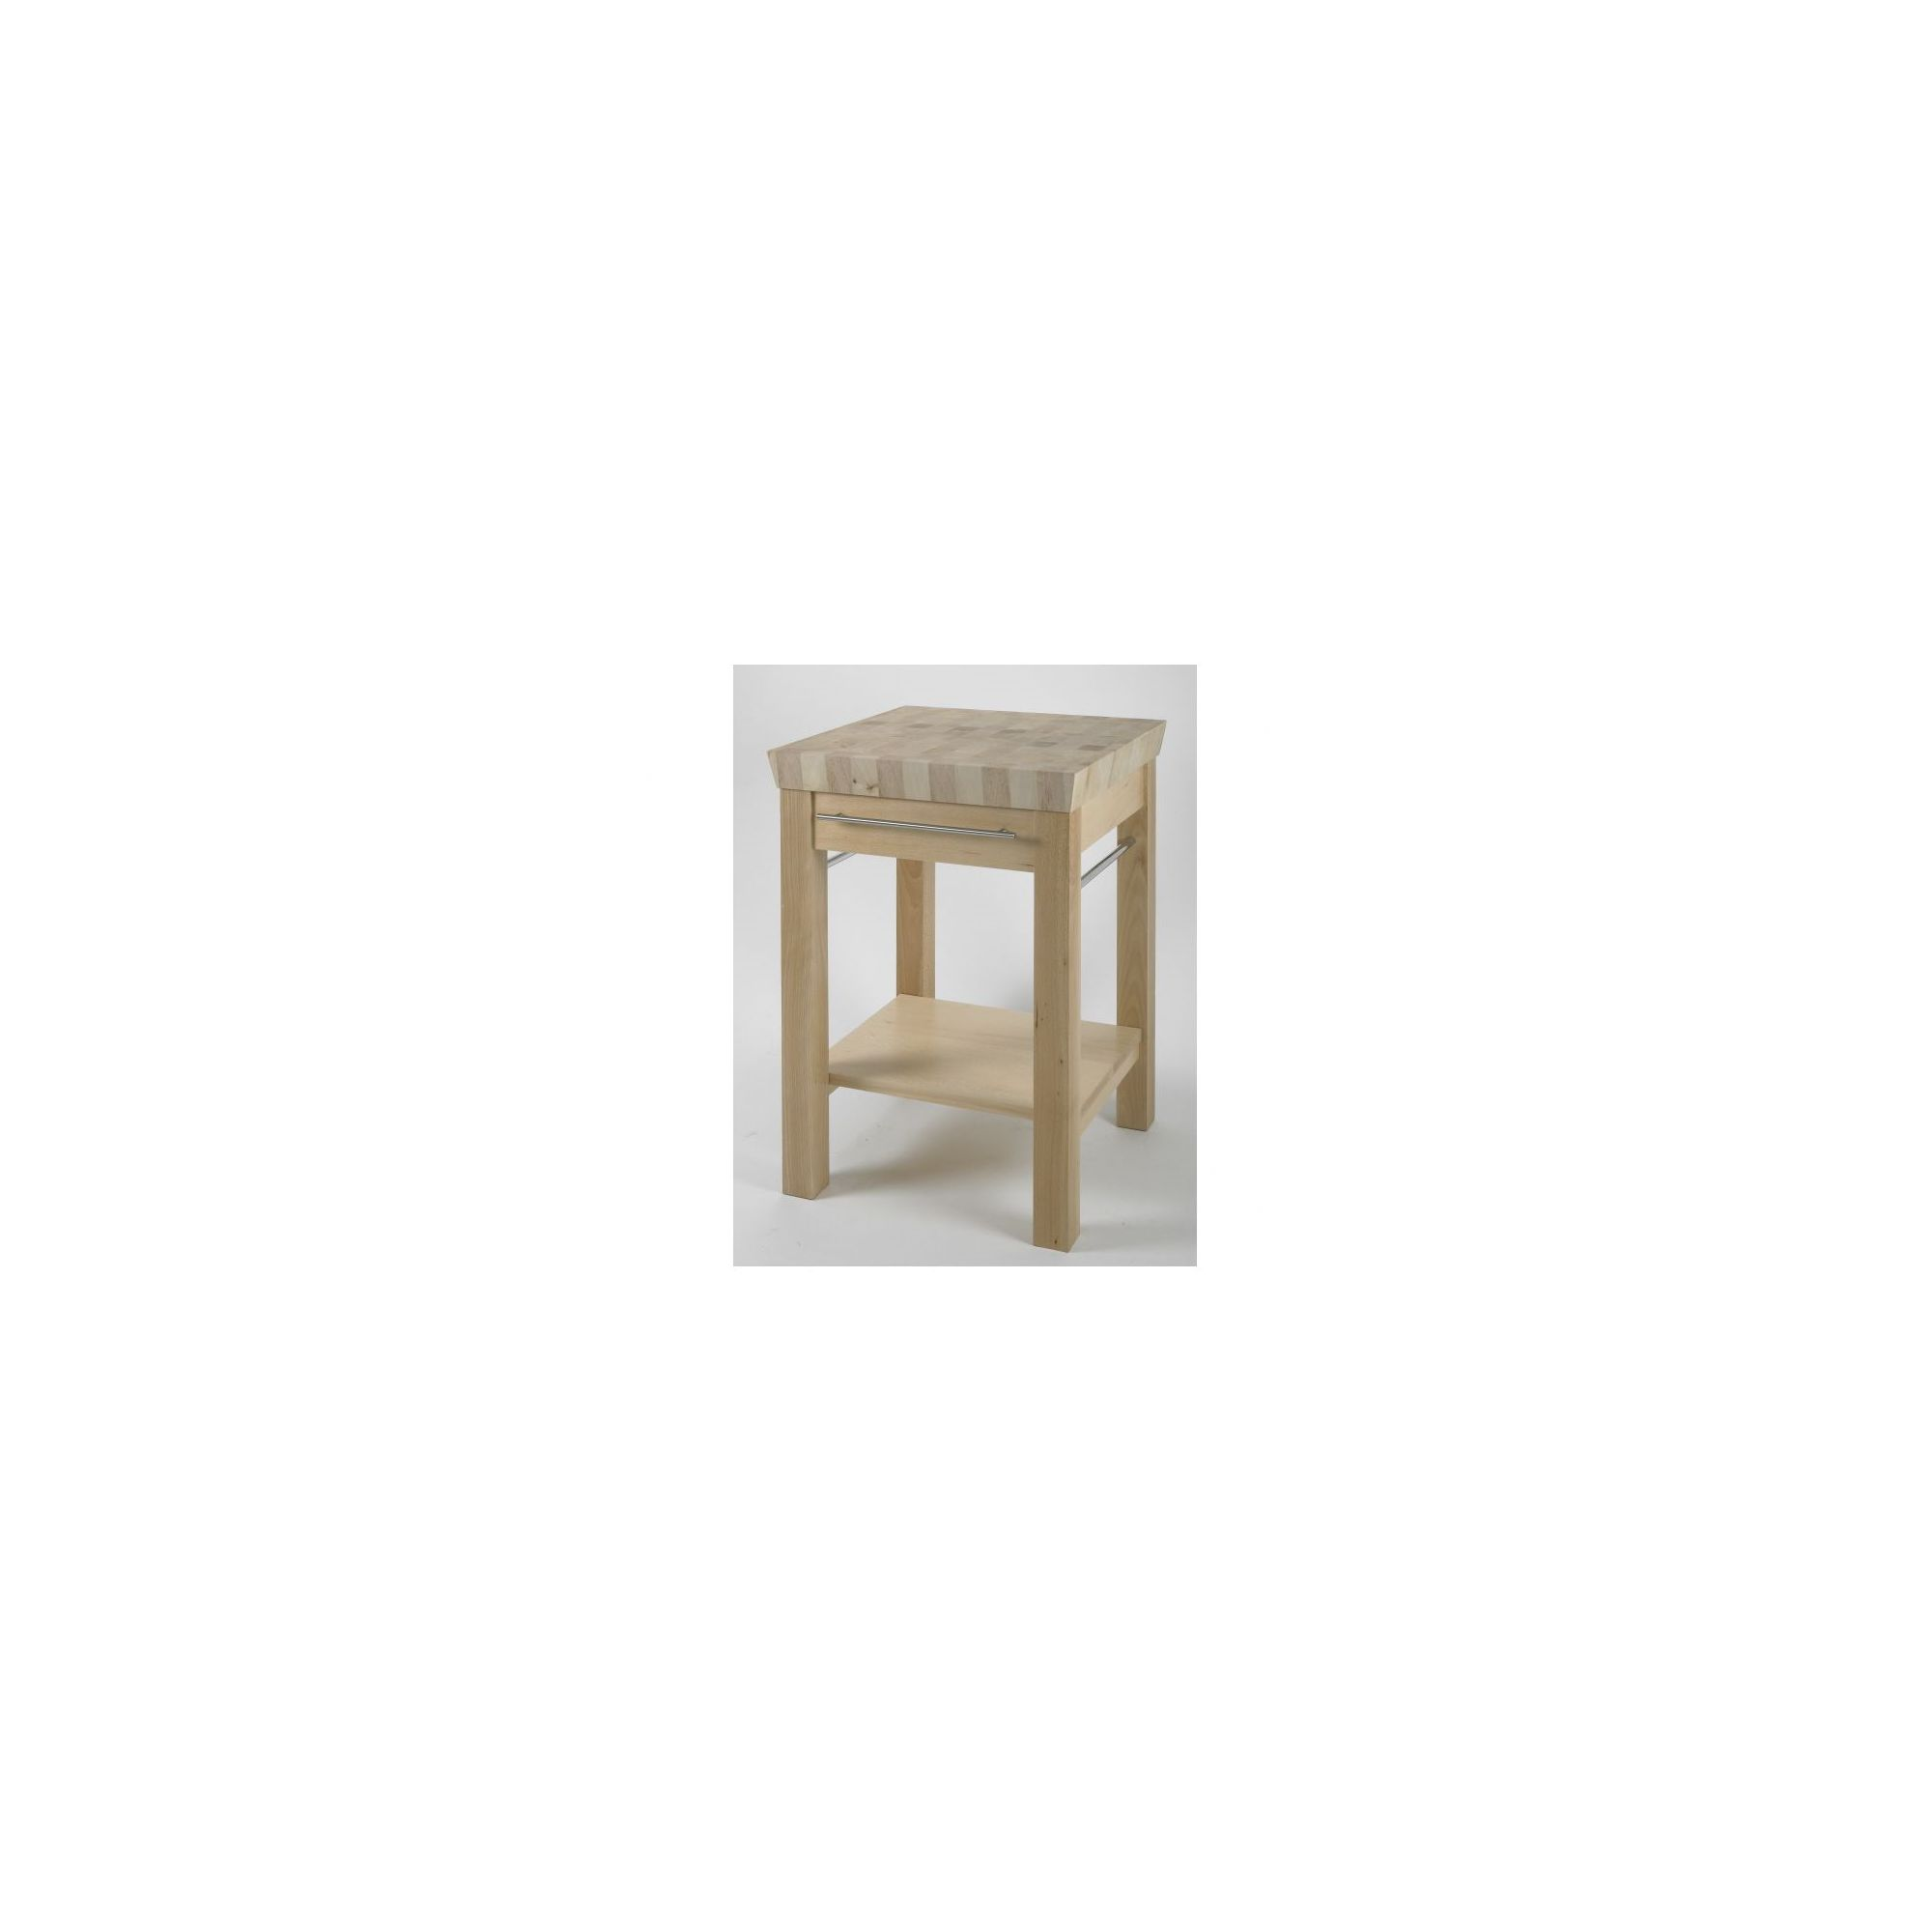 Chabret Occasional Furniture - 90cm X 50cm X 50cm at Tesco Direct